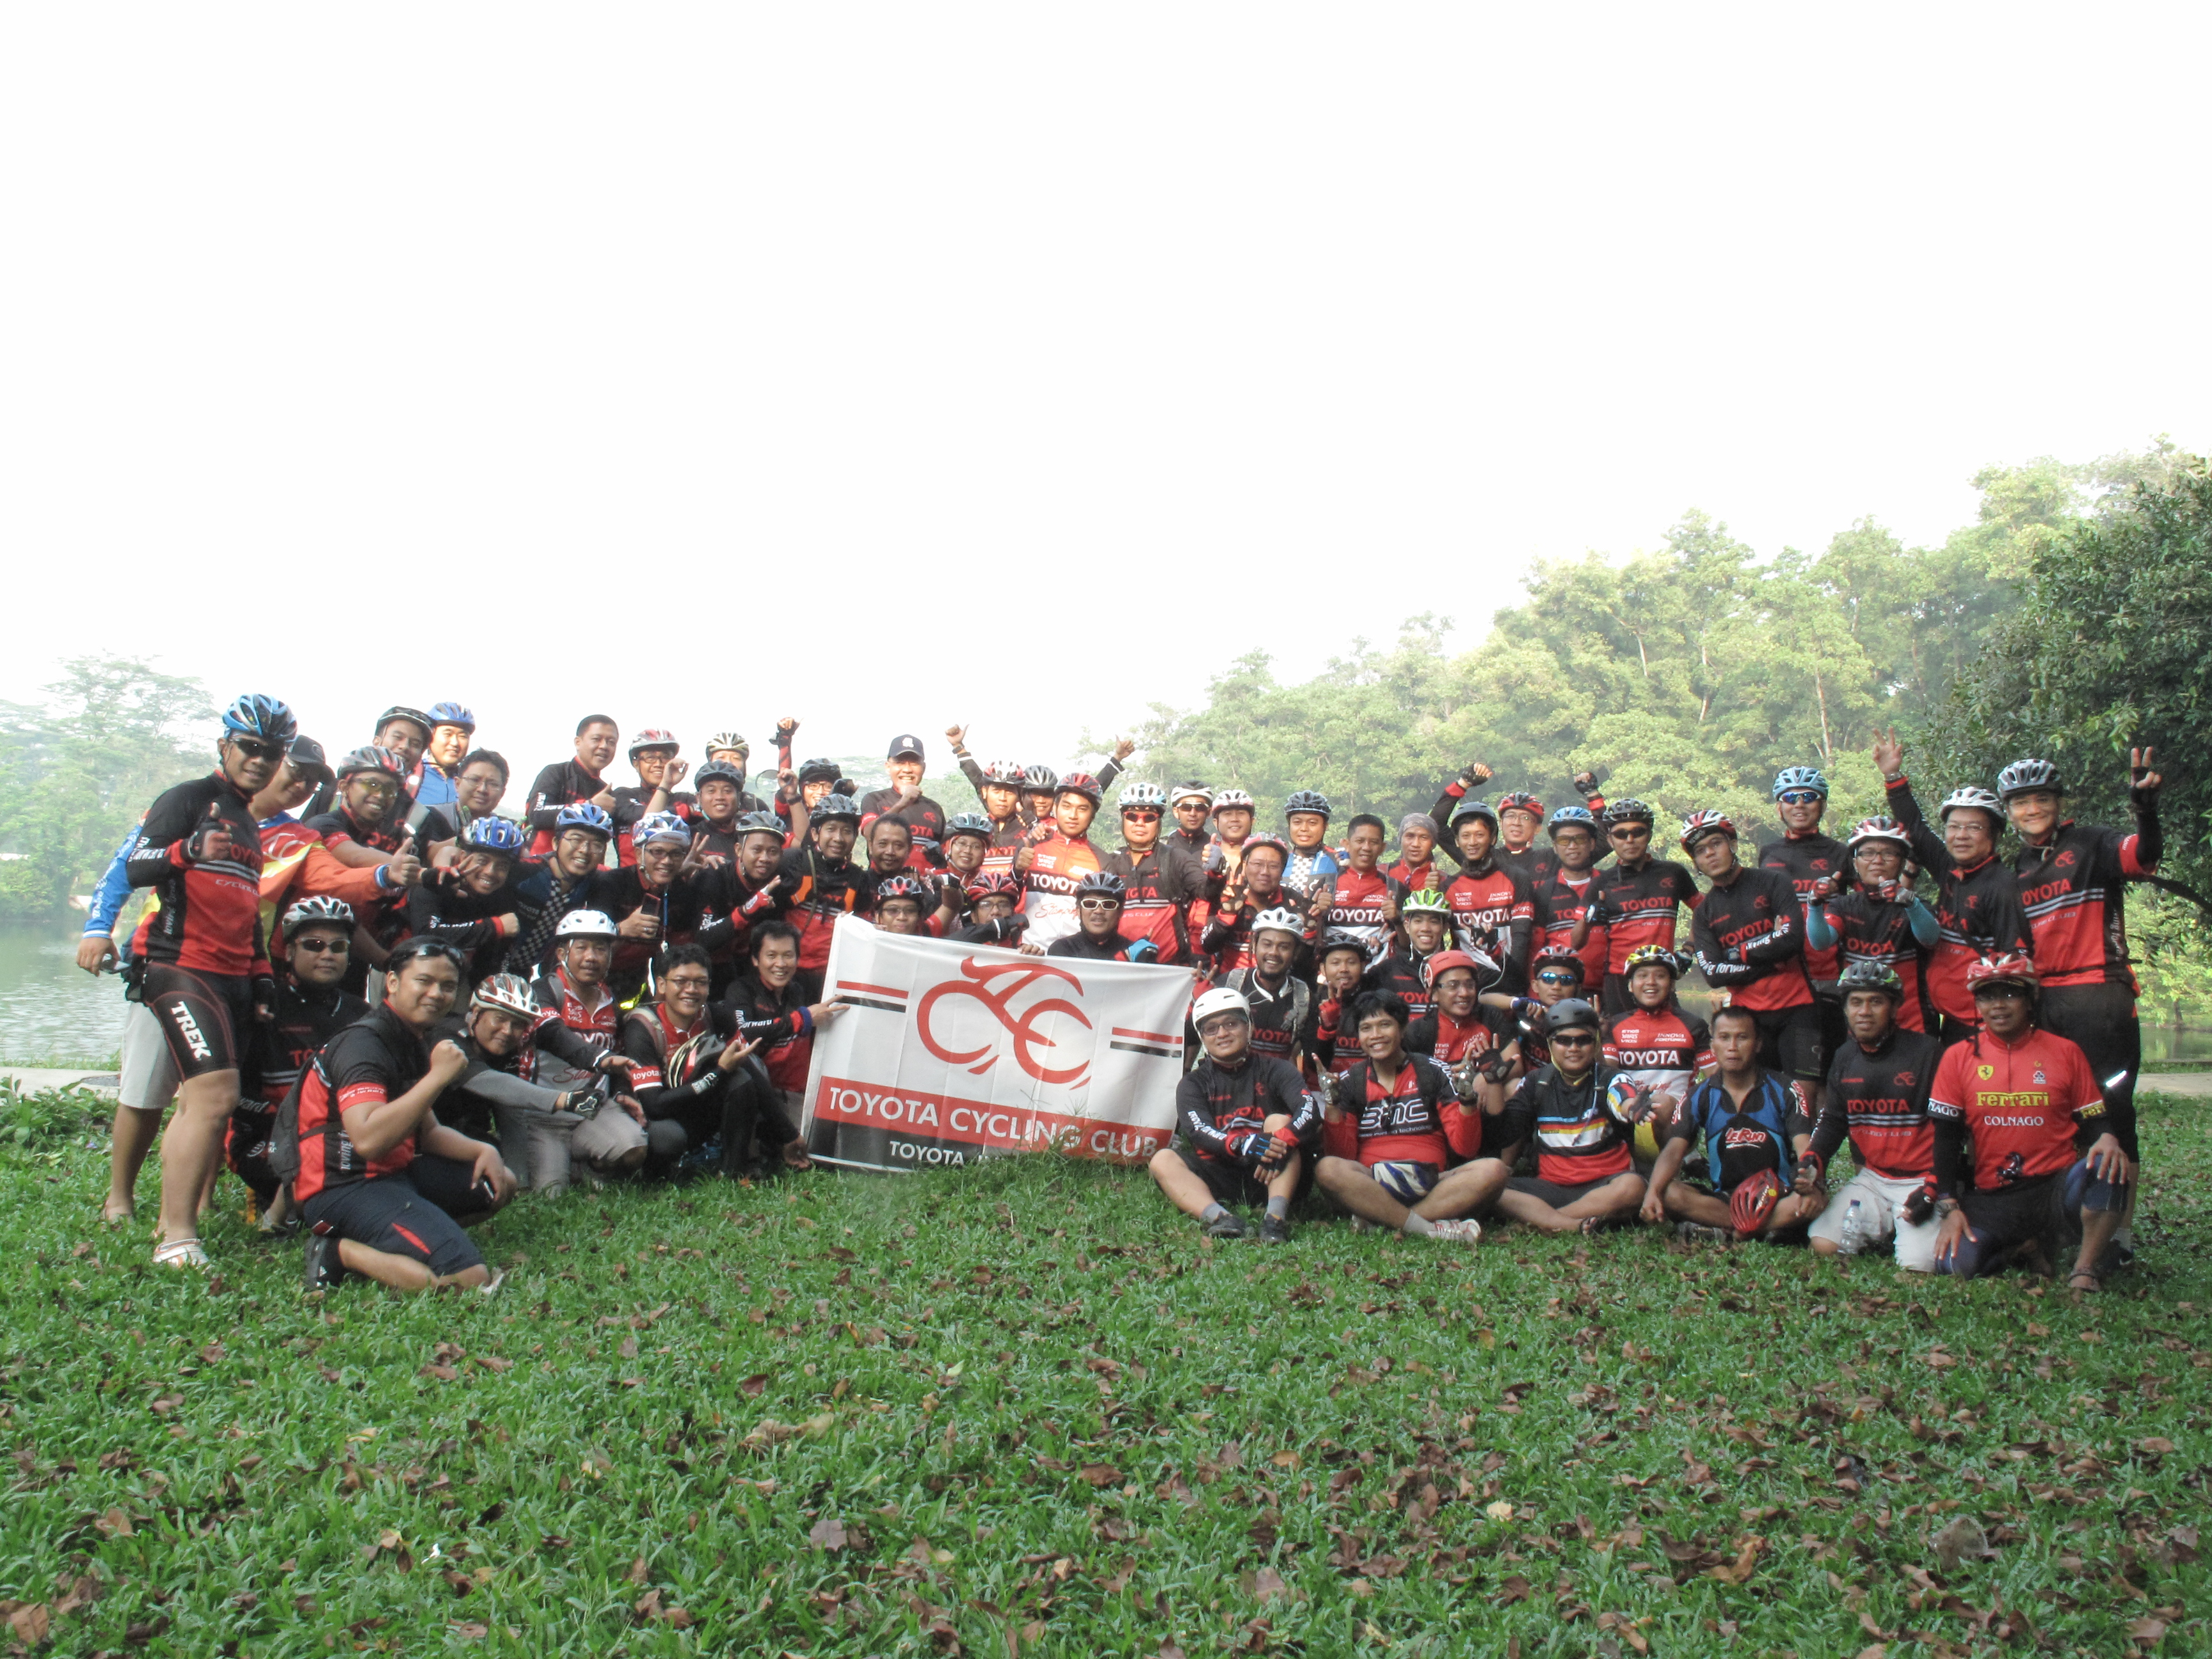 Toyota Cycling Club First Event in 2016